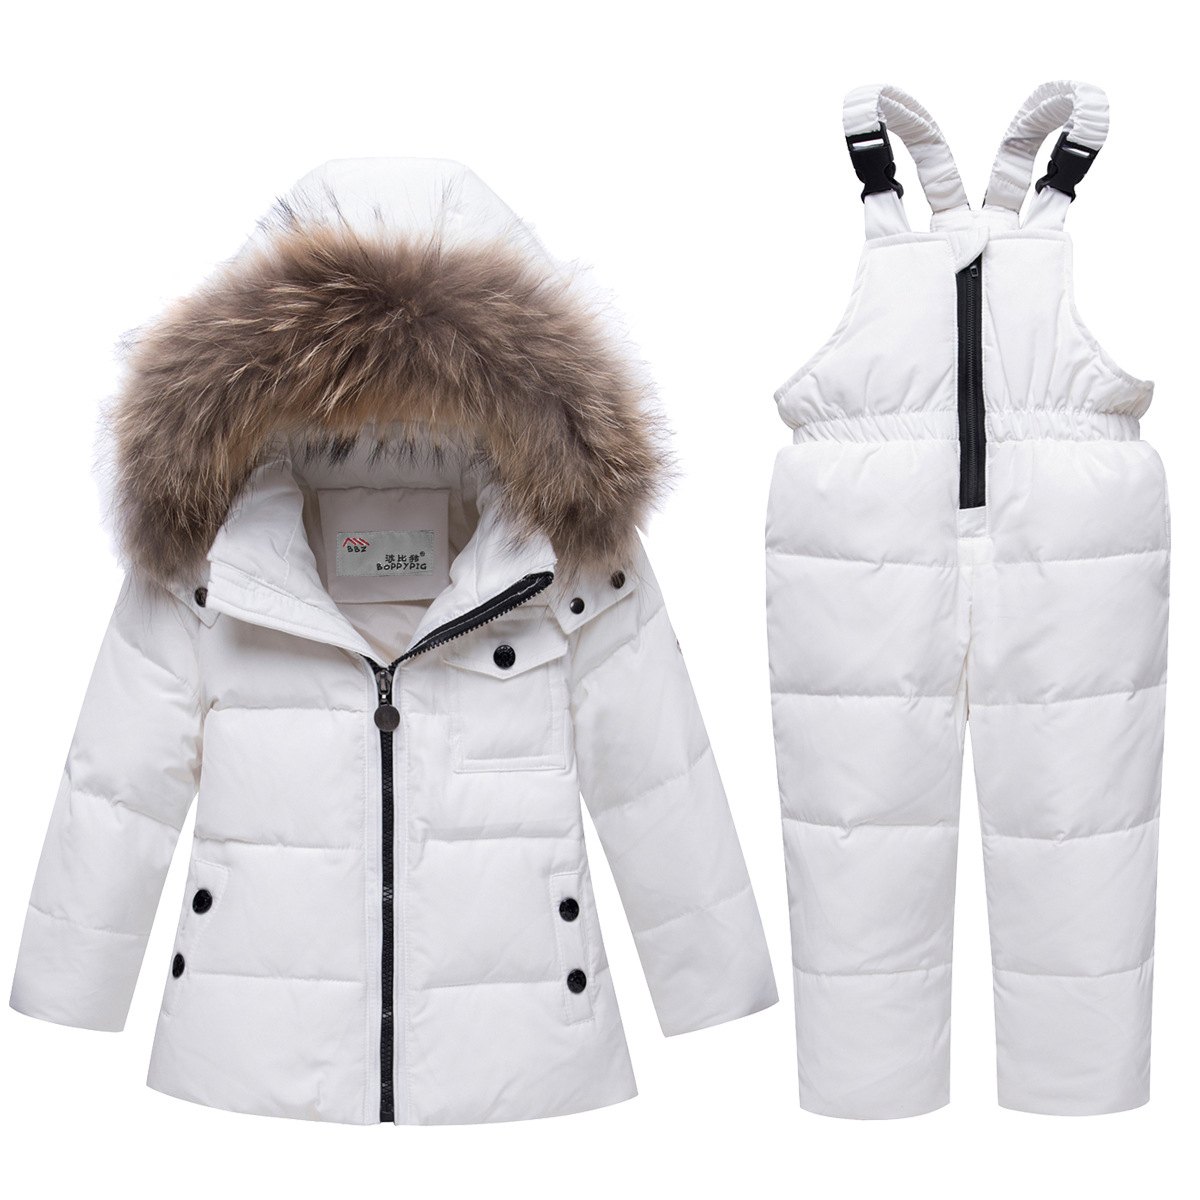 92eb57bc24e5 Russian Winter Suits for Boys Girls 2018 Ski Suit Children Clothing ...